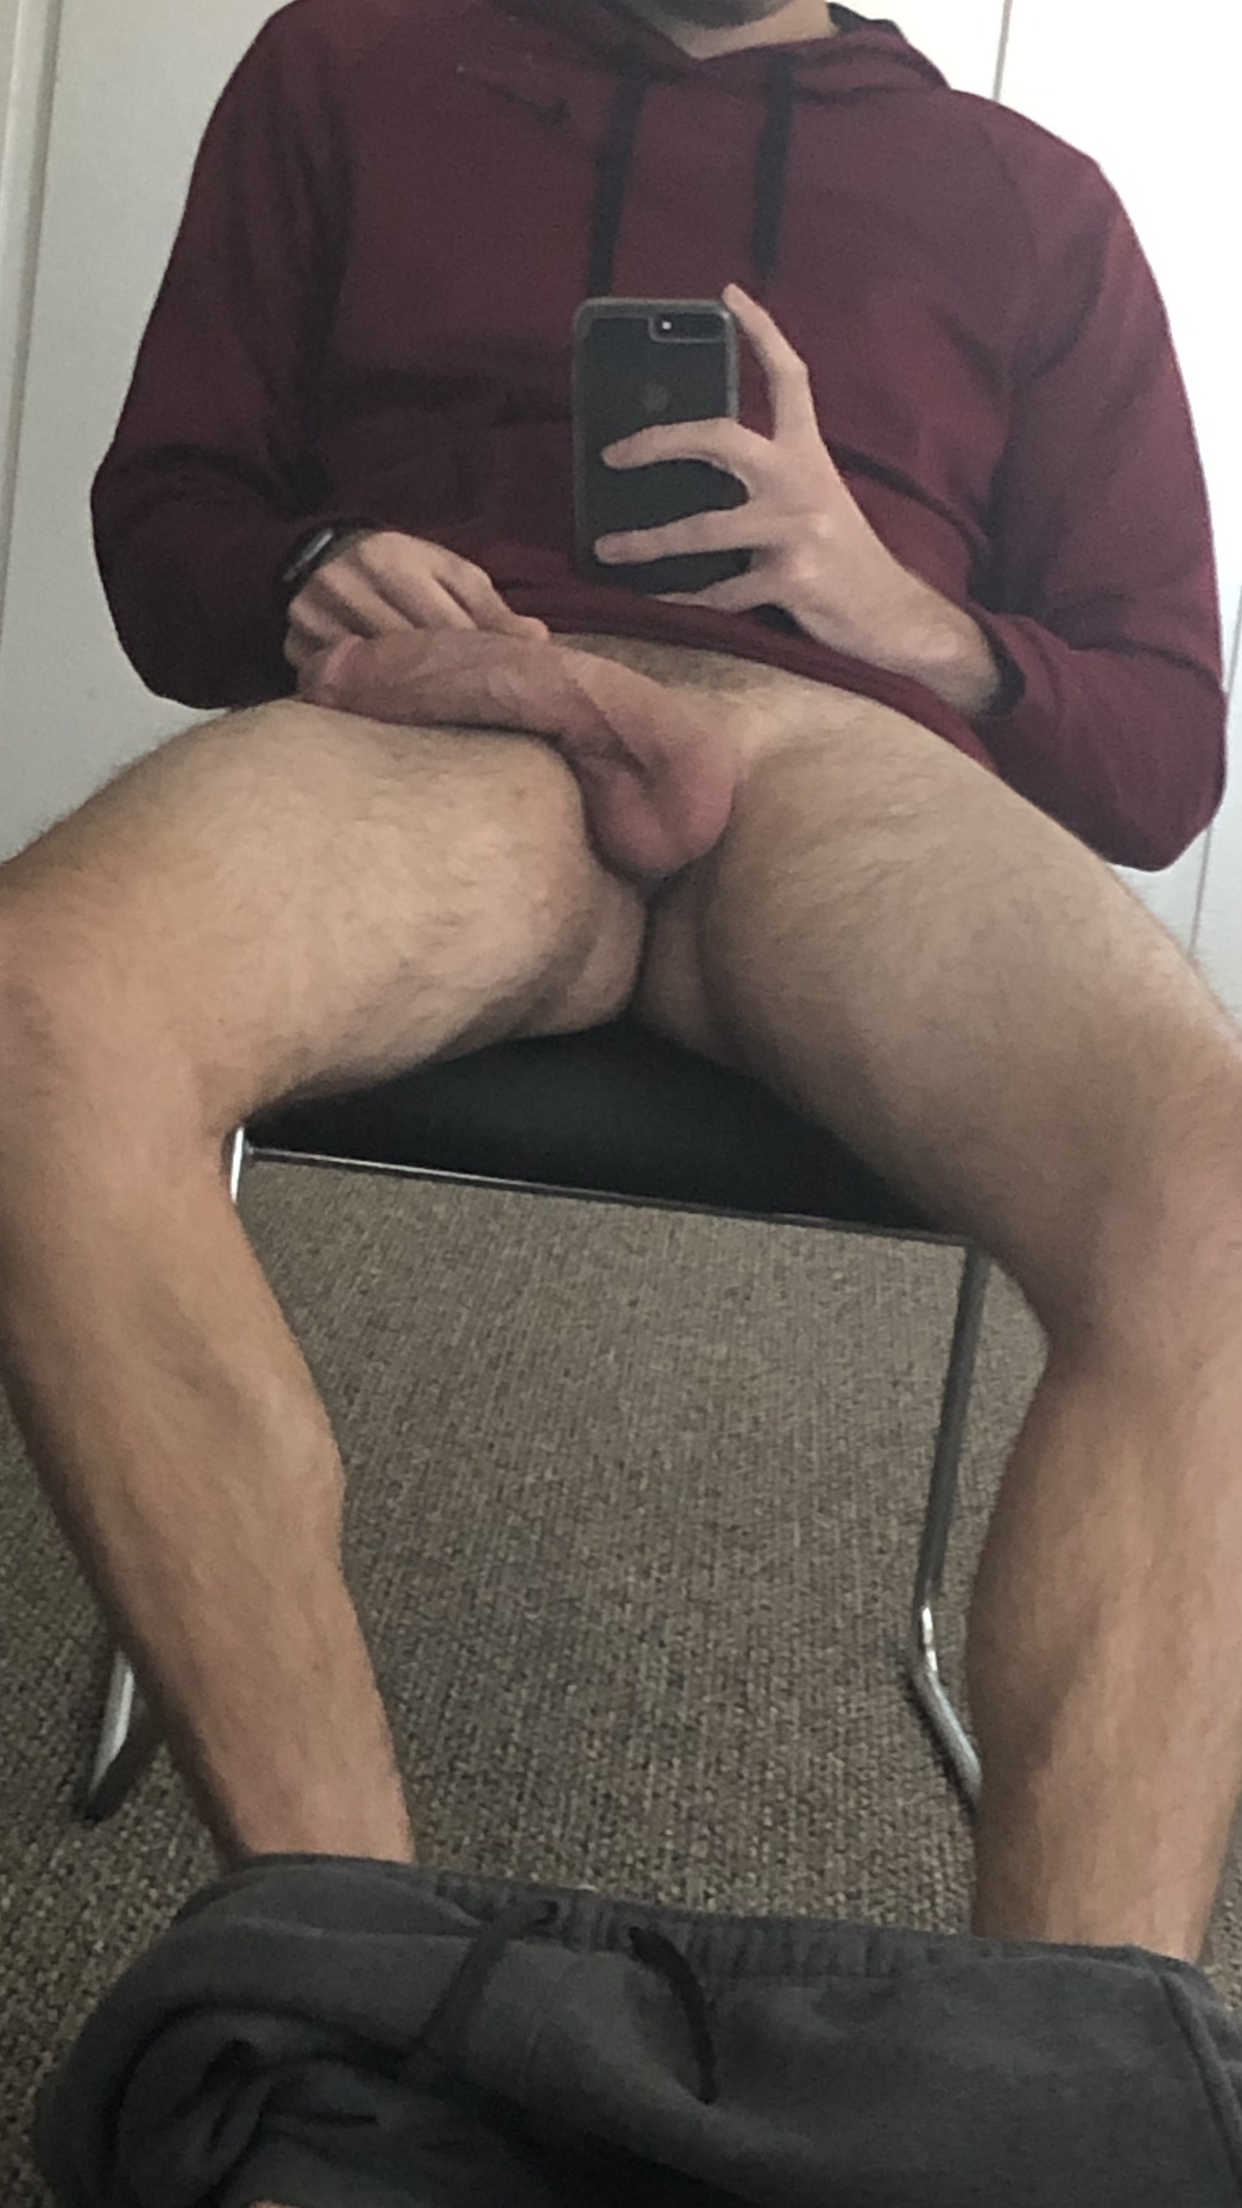 A perfect selfie in the mirror showing my cock